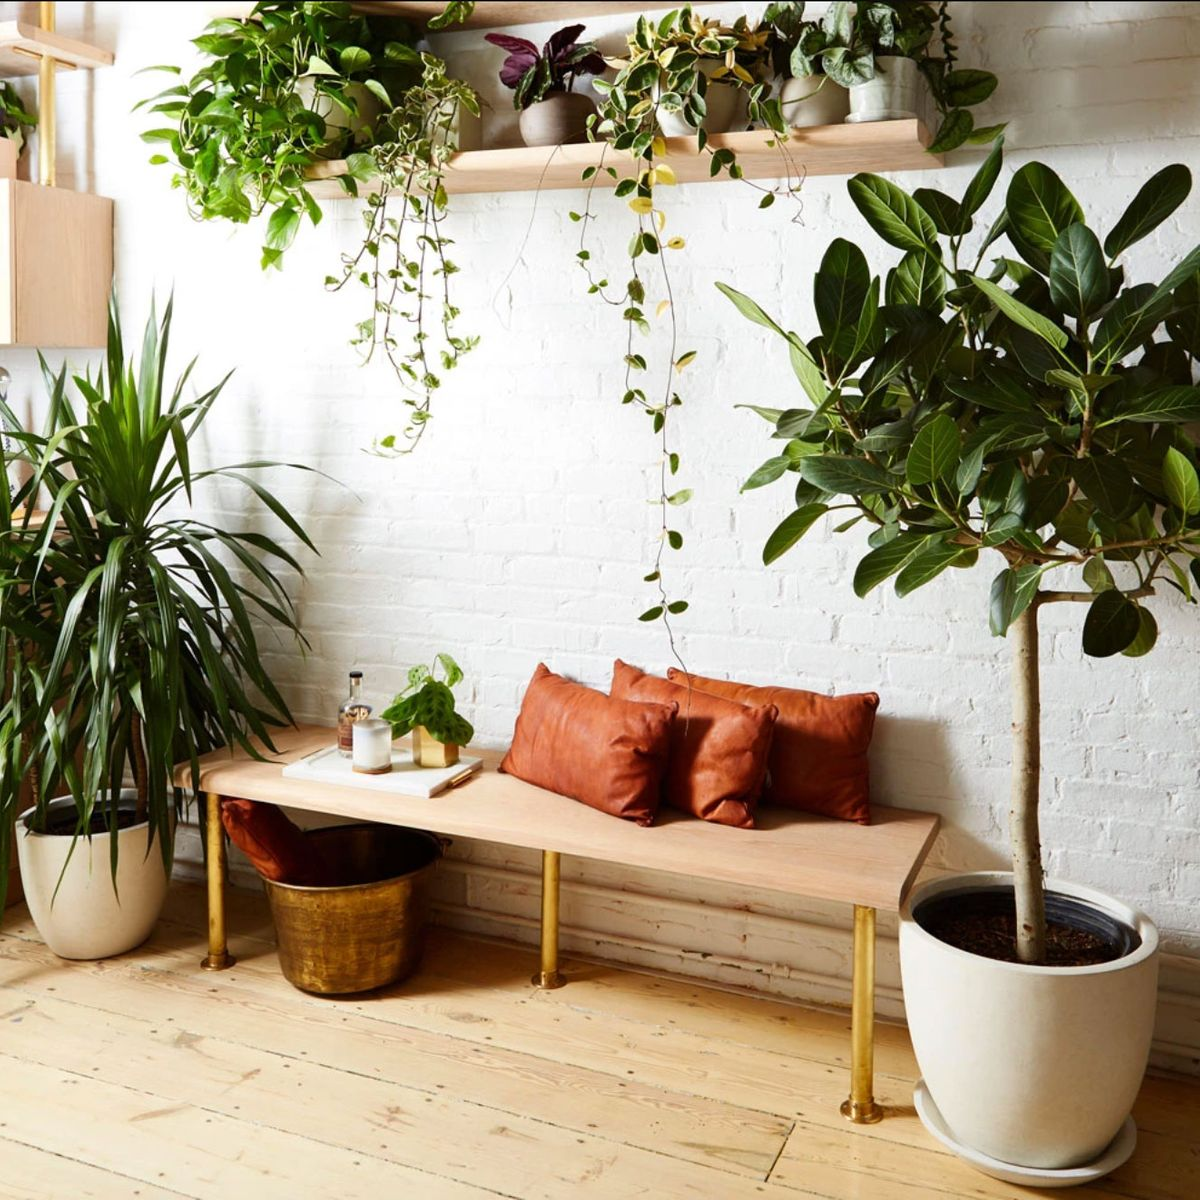 Best Houseplants For Winter And How To Care For Them 2020 The Strategist New York Magazine